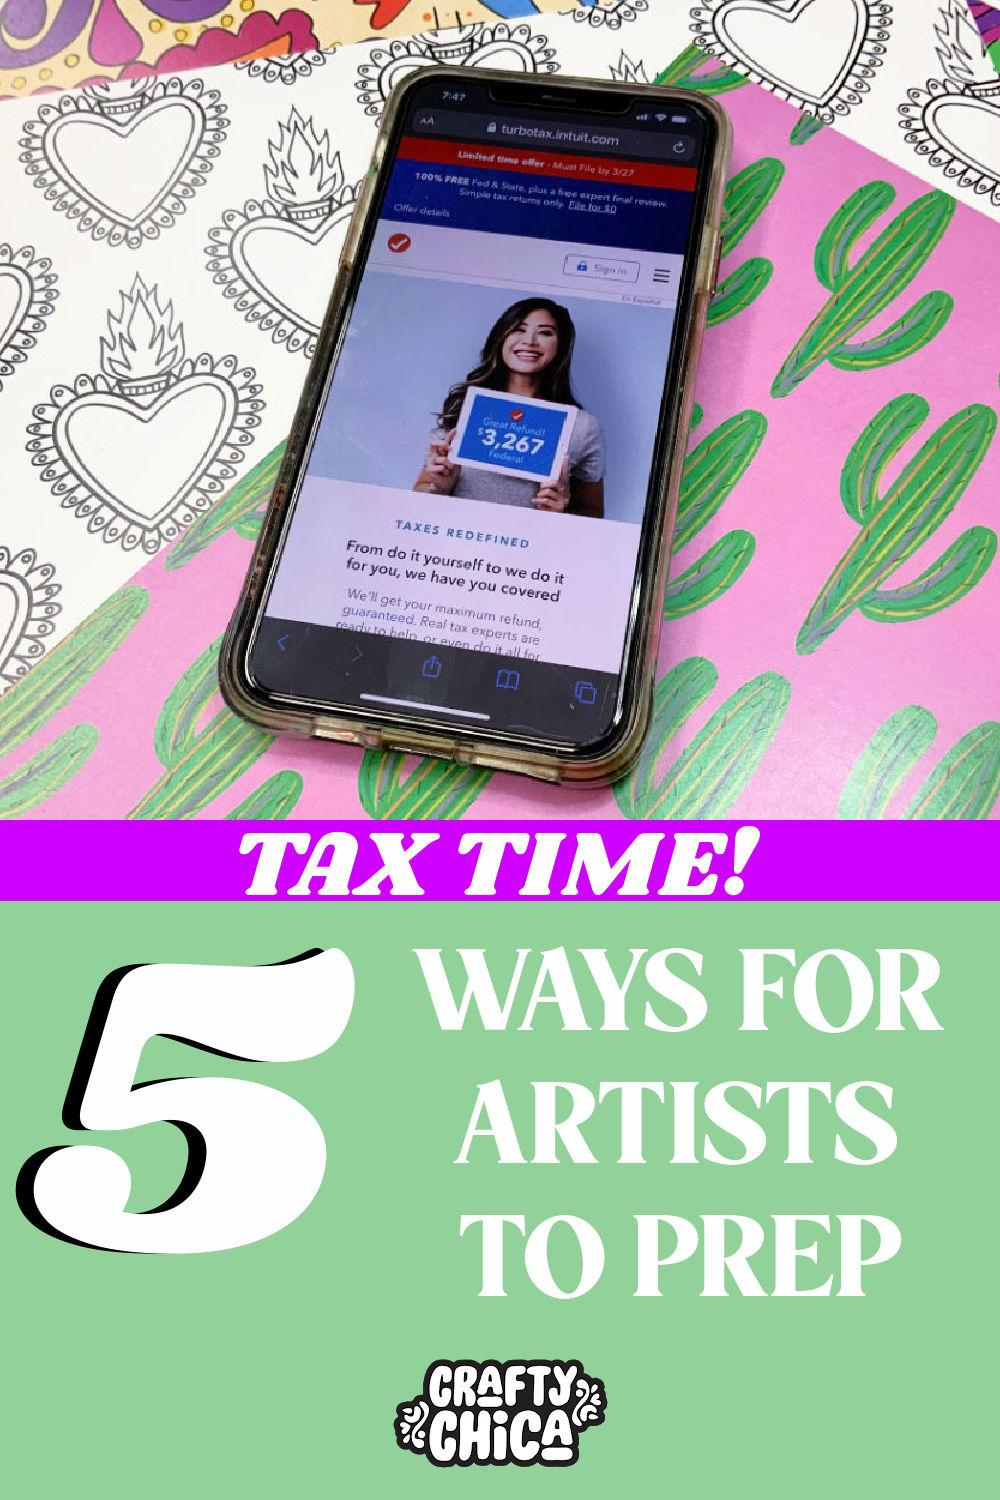 5 ways to prep for your taxes #craftychica #turbotaxgivesyoumas